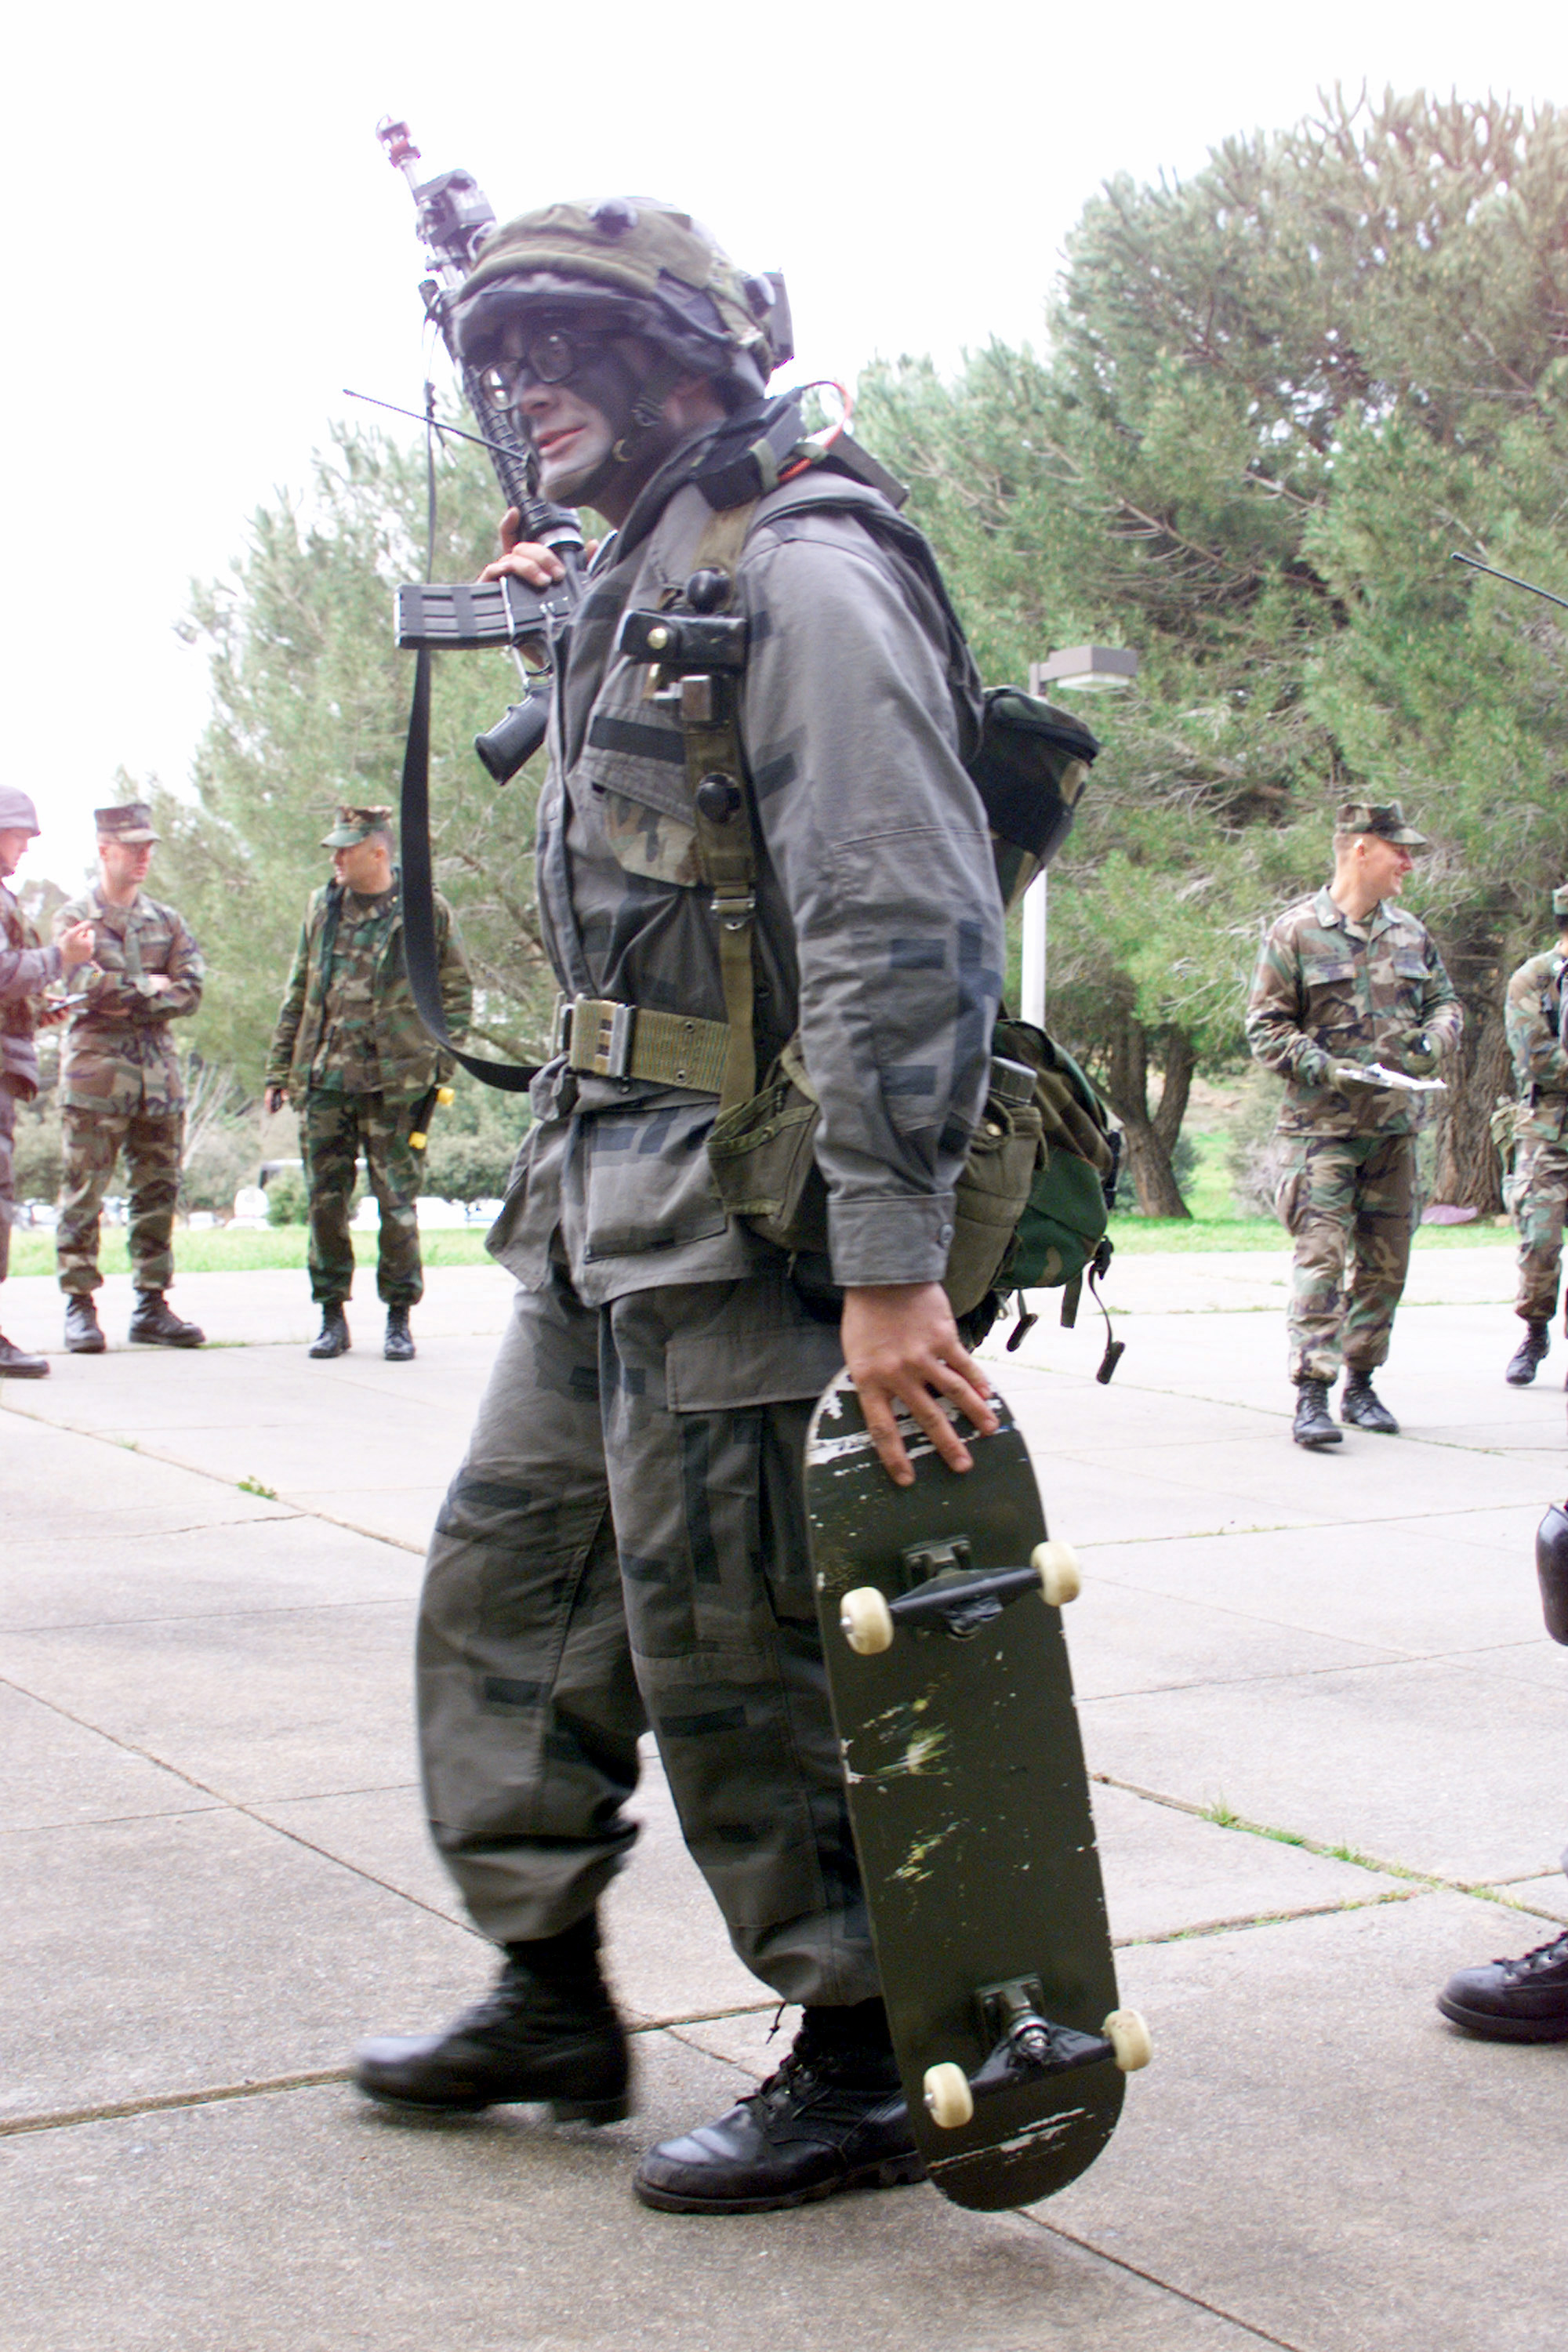 A soldier with a skateboard.